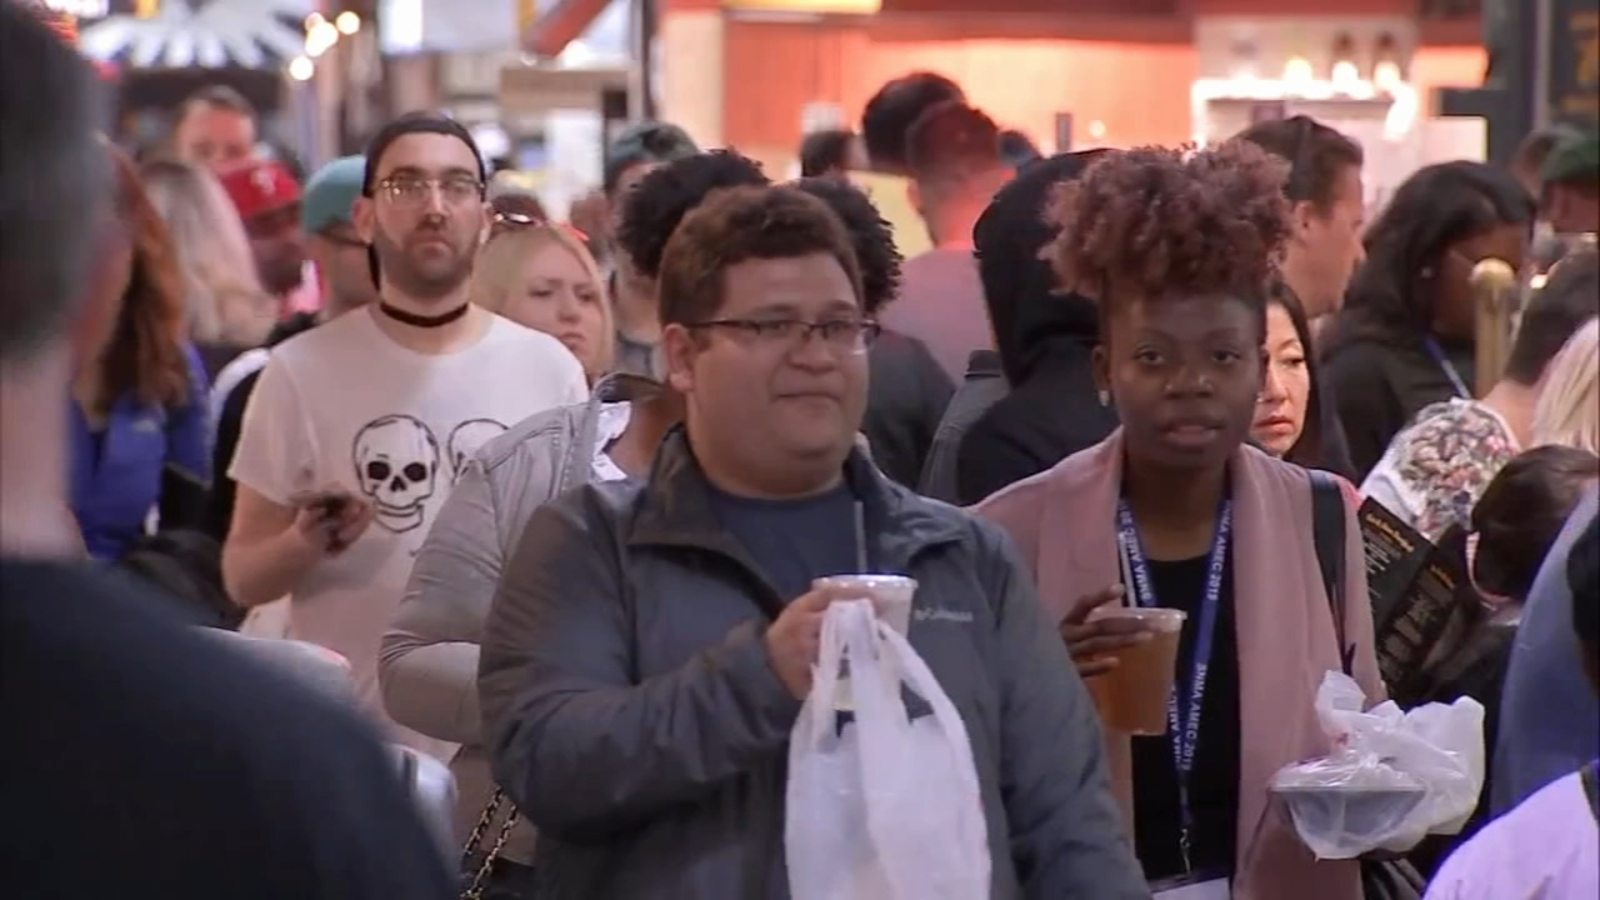 Folks head to Reading Terminal for holiday weekend shopping